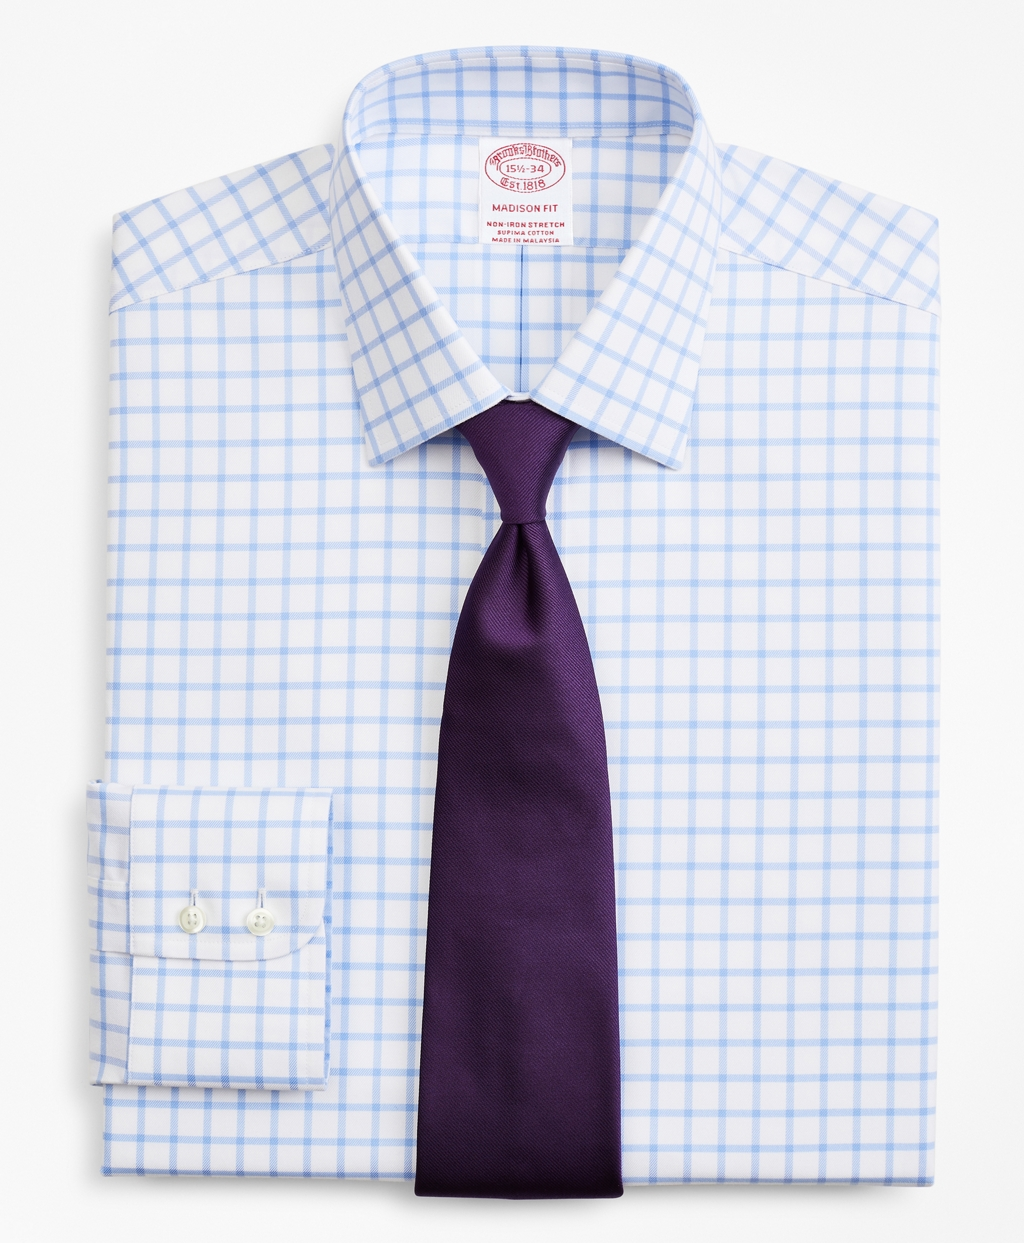 Brooksbrothers Stretch Madison Relaxed-Fit Dress Shirt, Non-Iron Twill Ainsley Collar Grid Check